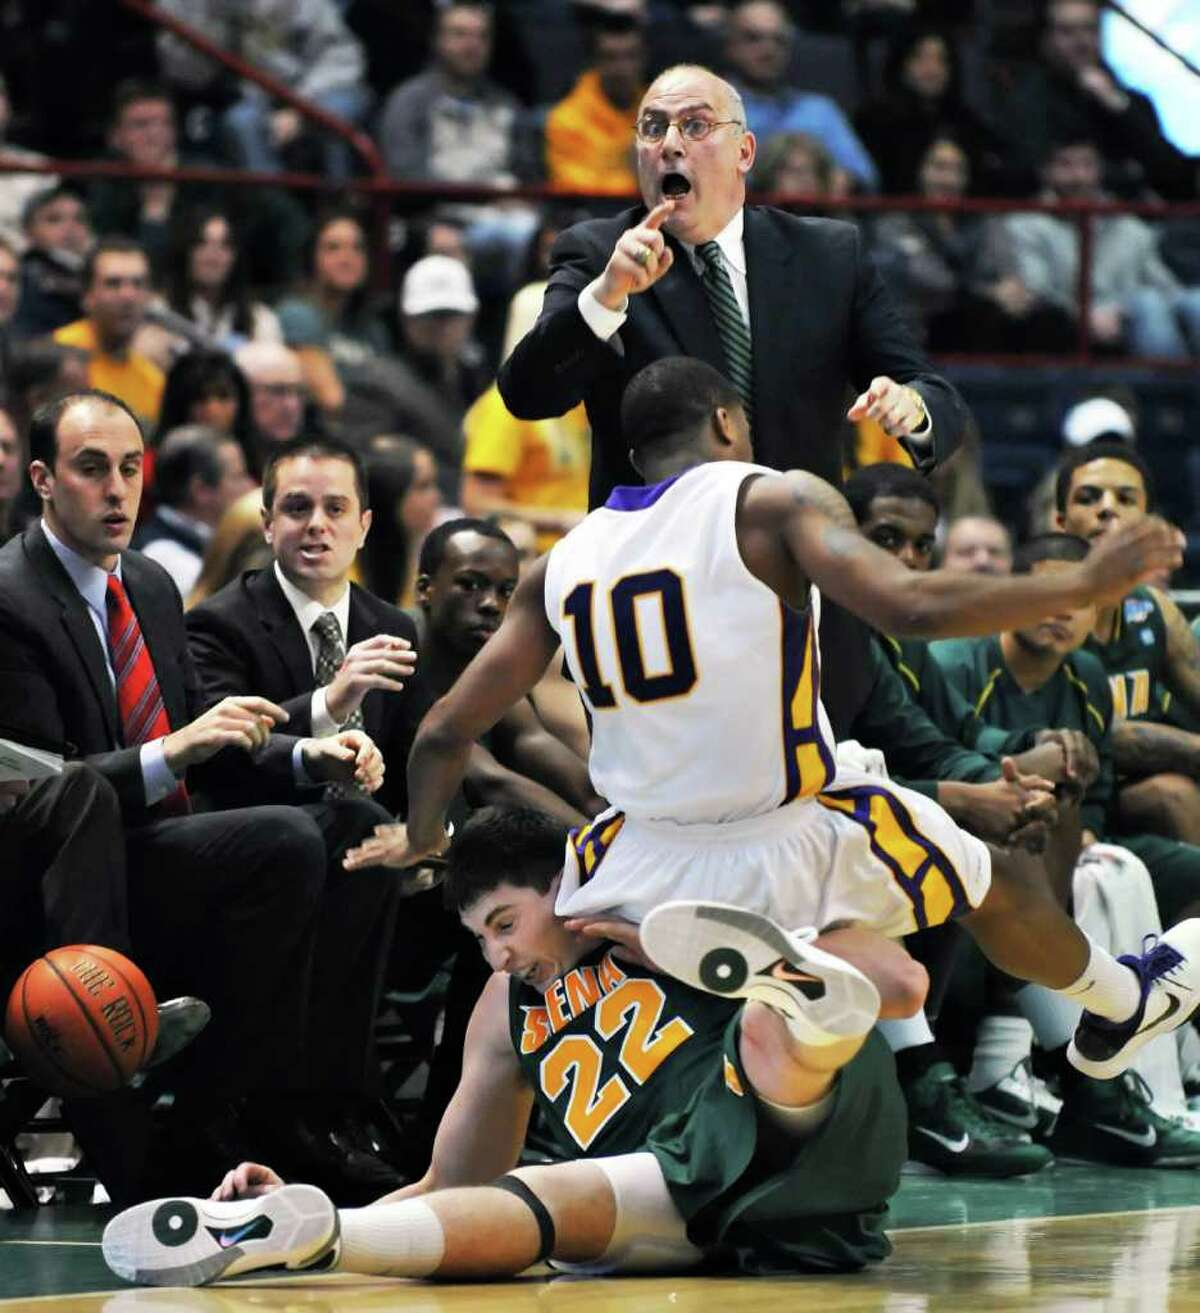 7. Siena successor found a few seats down. After Fran McCaffery departed for Iowa, Siena conducted a nationwide search before selecting longtime McCaffery assistant Mitch Buonaguro to take over the men?s basketball program.